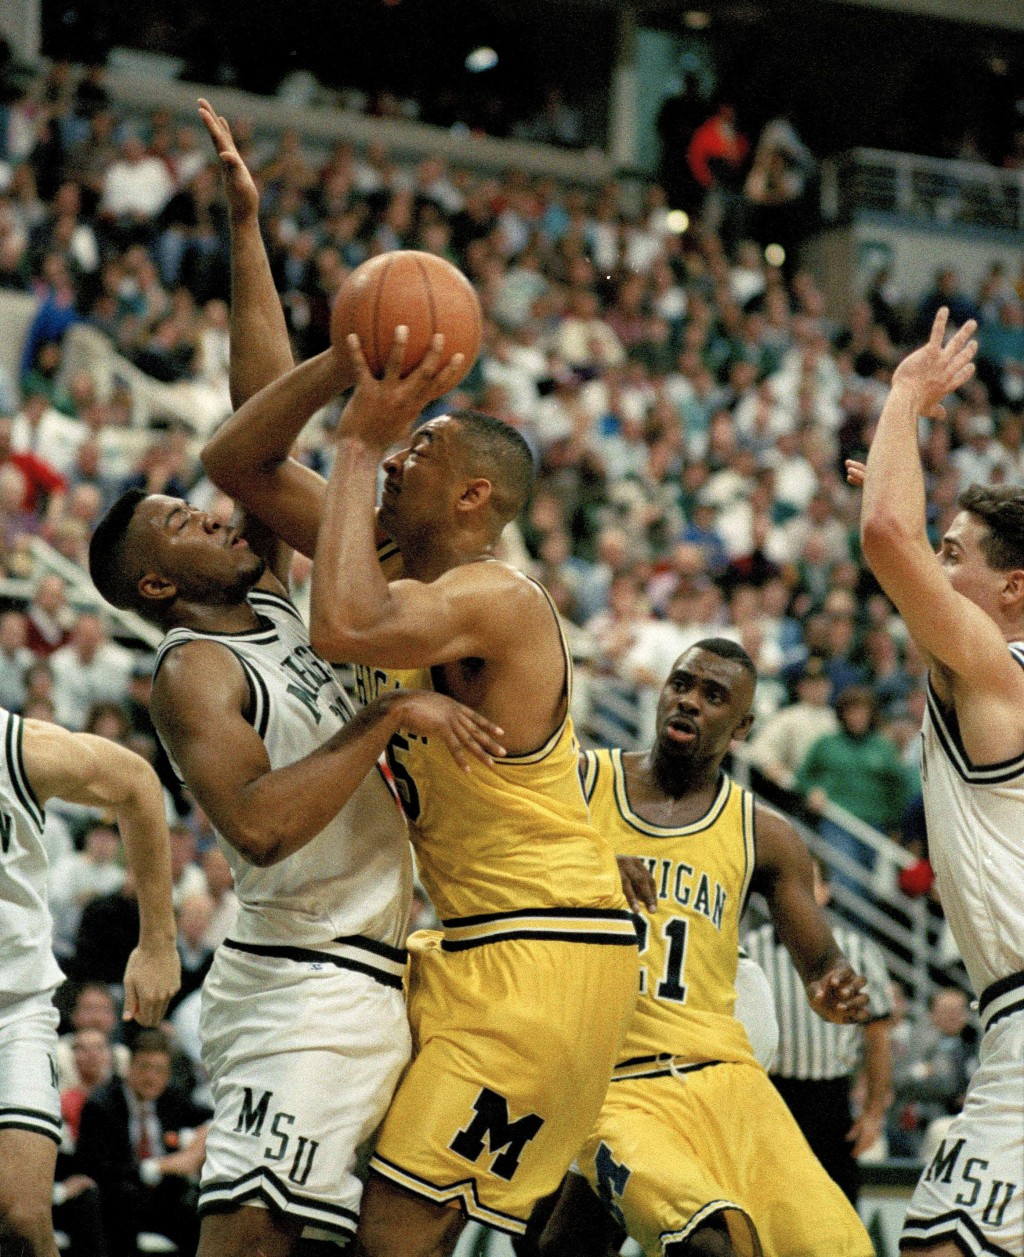 FILE - In this Feb. 3, 1993 file photo, Michigan's Juwan Howard, right, pushes against Michigan State's Dwayne Stephens as he goes up for a shot durin...